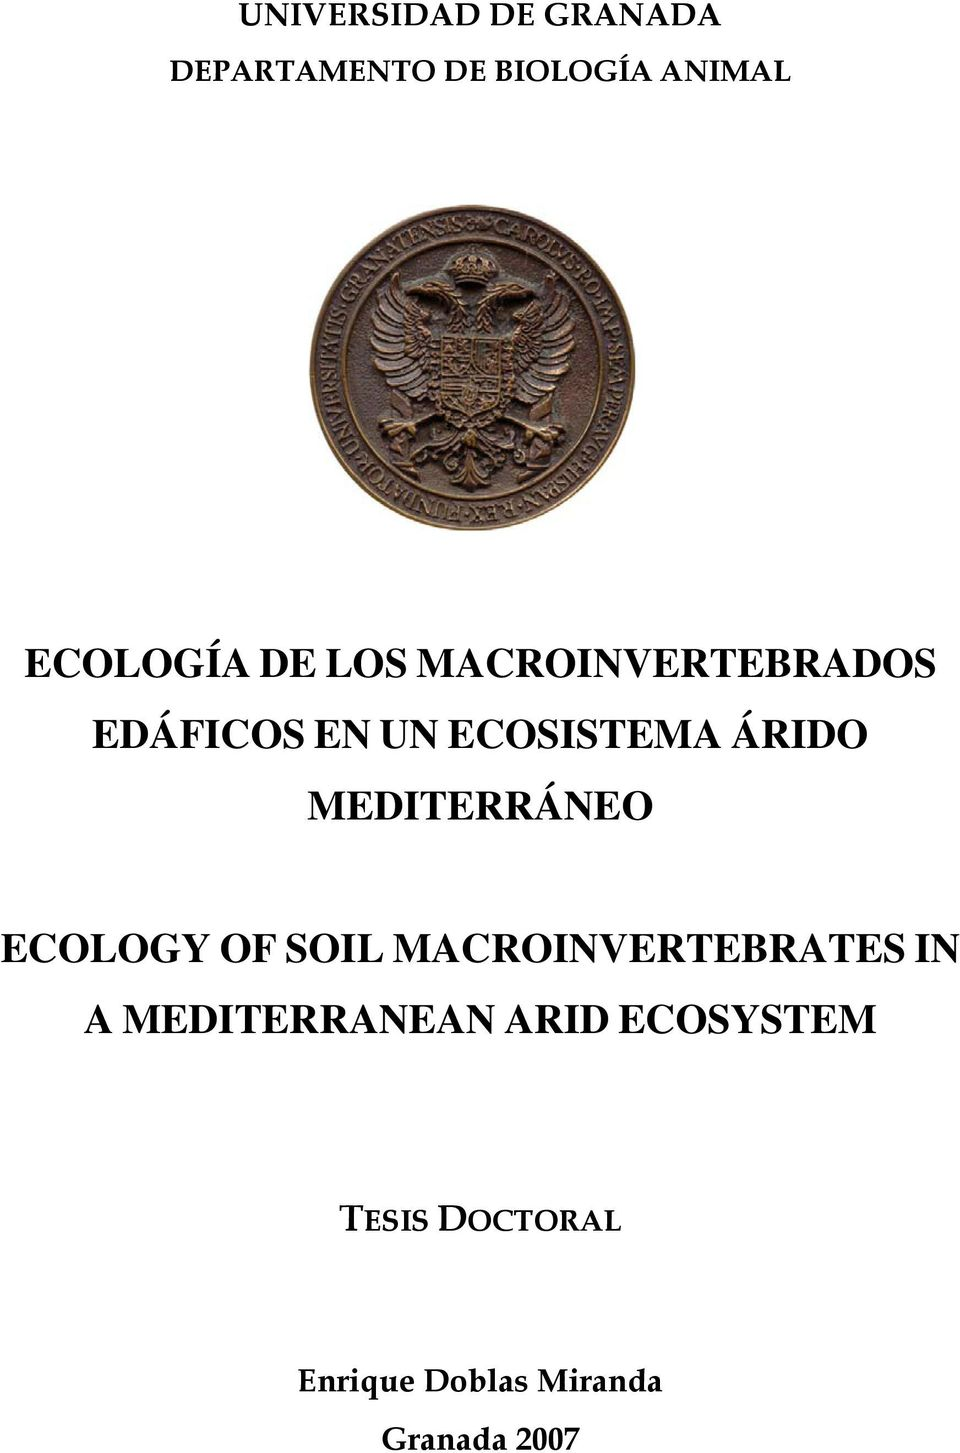 MEDITERRÁNEO ECOLOGY OF SOIL MACROINVERTEBRATES IN A